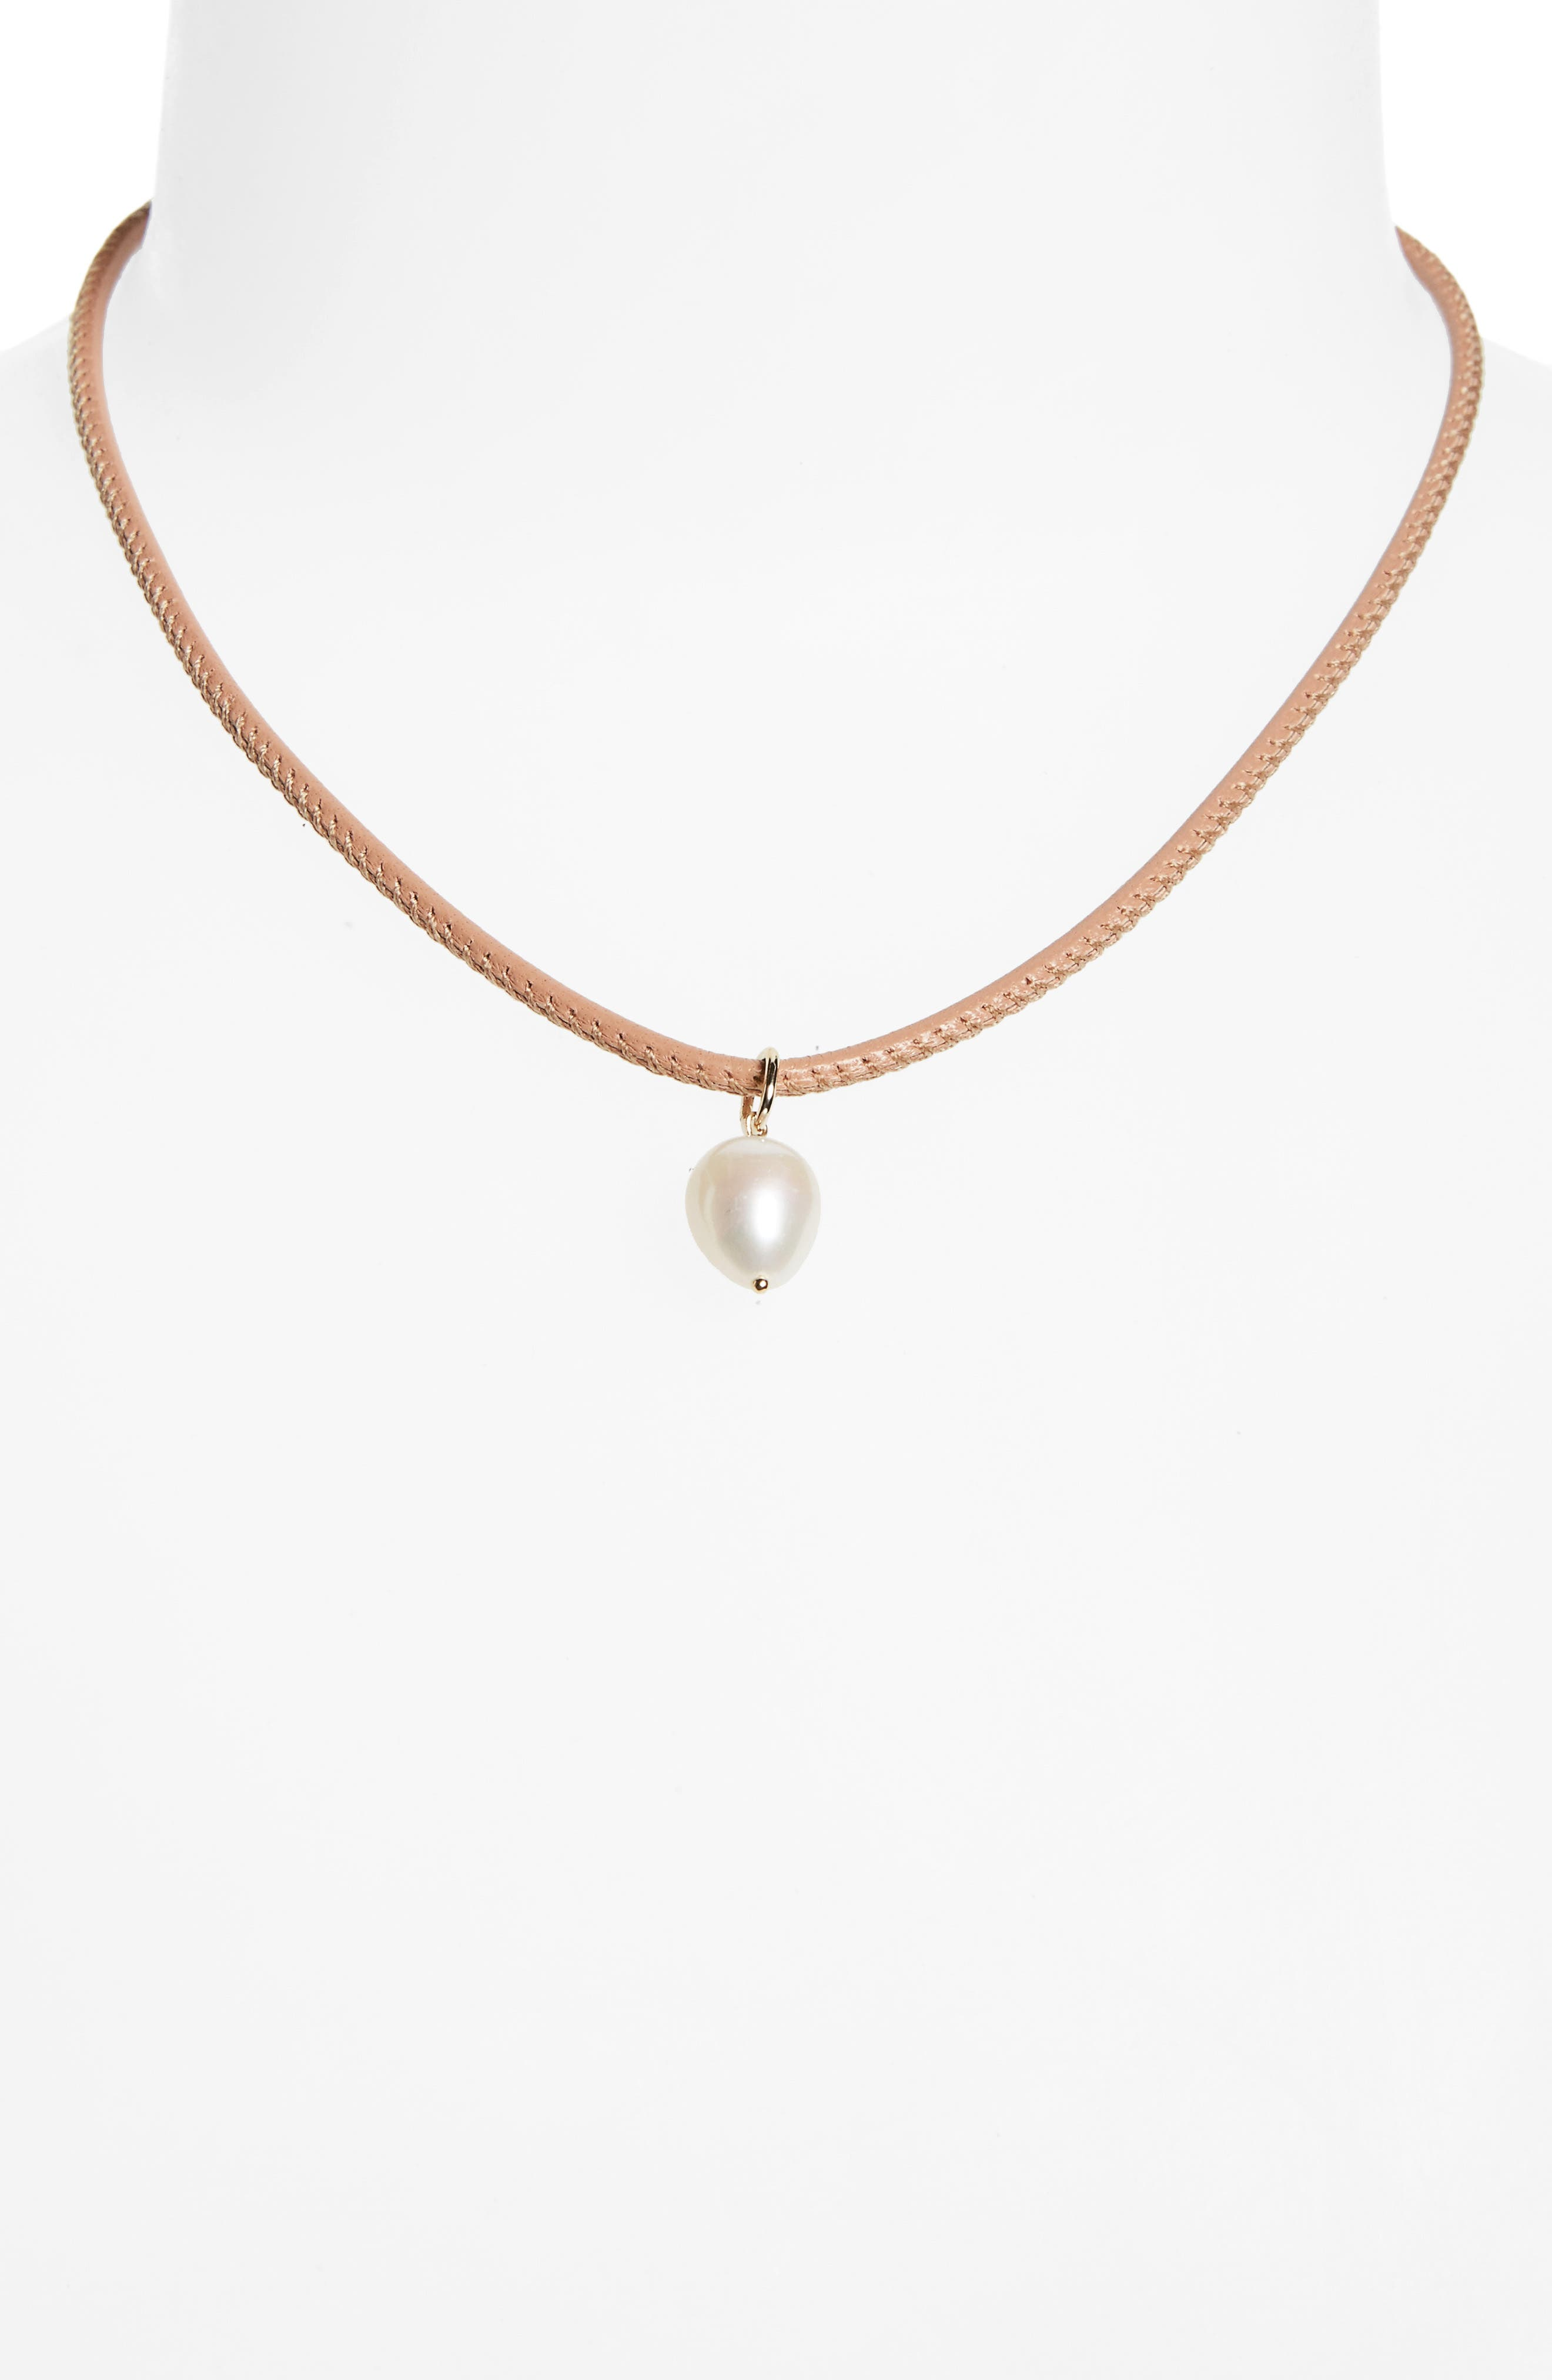 Leather & Pearl Choker,                         Main,                         color, NEUTRAL LEATHER/ WHITE PEARL